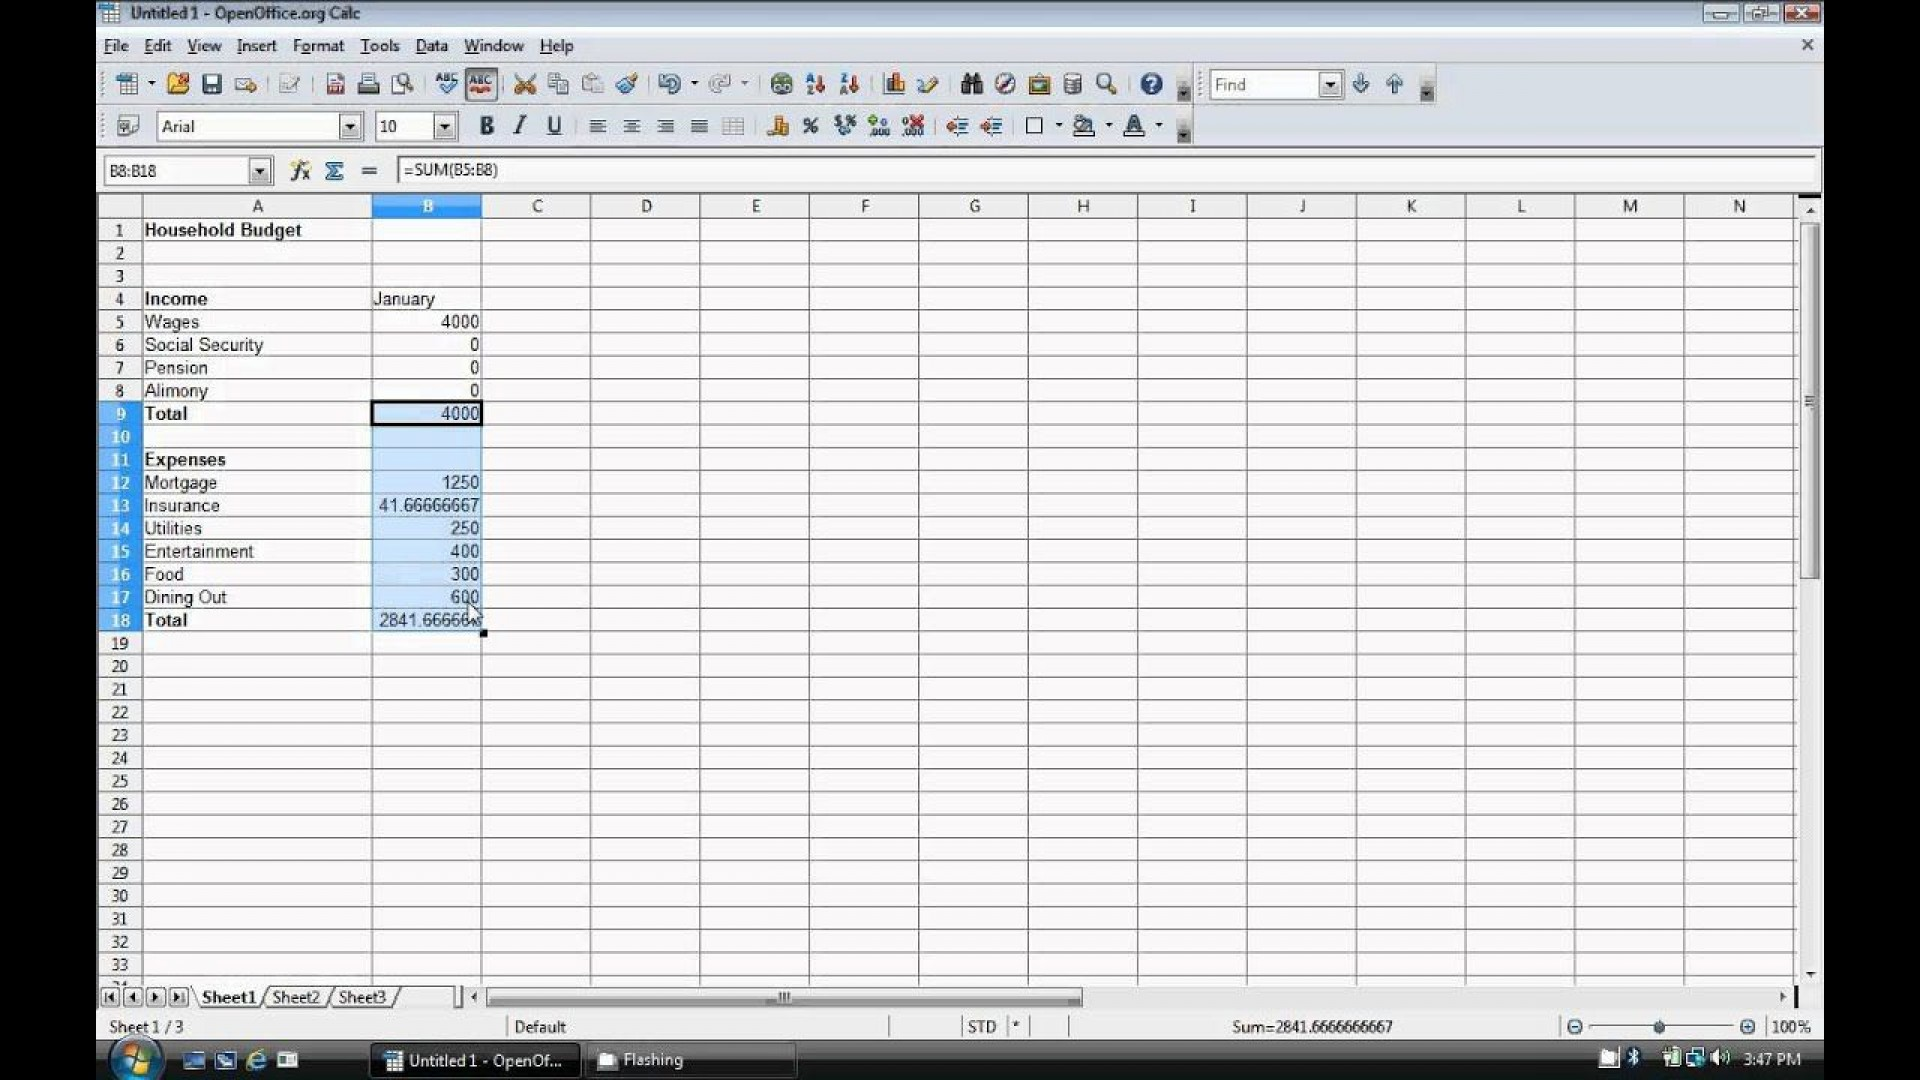 009 Fascinating Event Planner Budget Template Excel High Def  Party Planning Spreadsheet1920